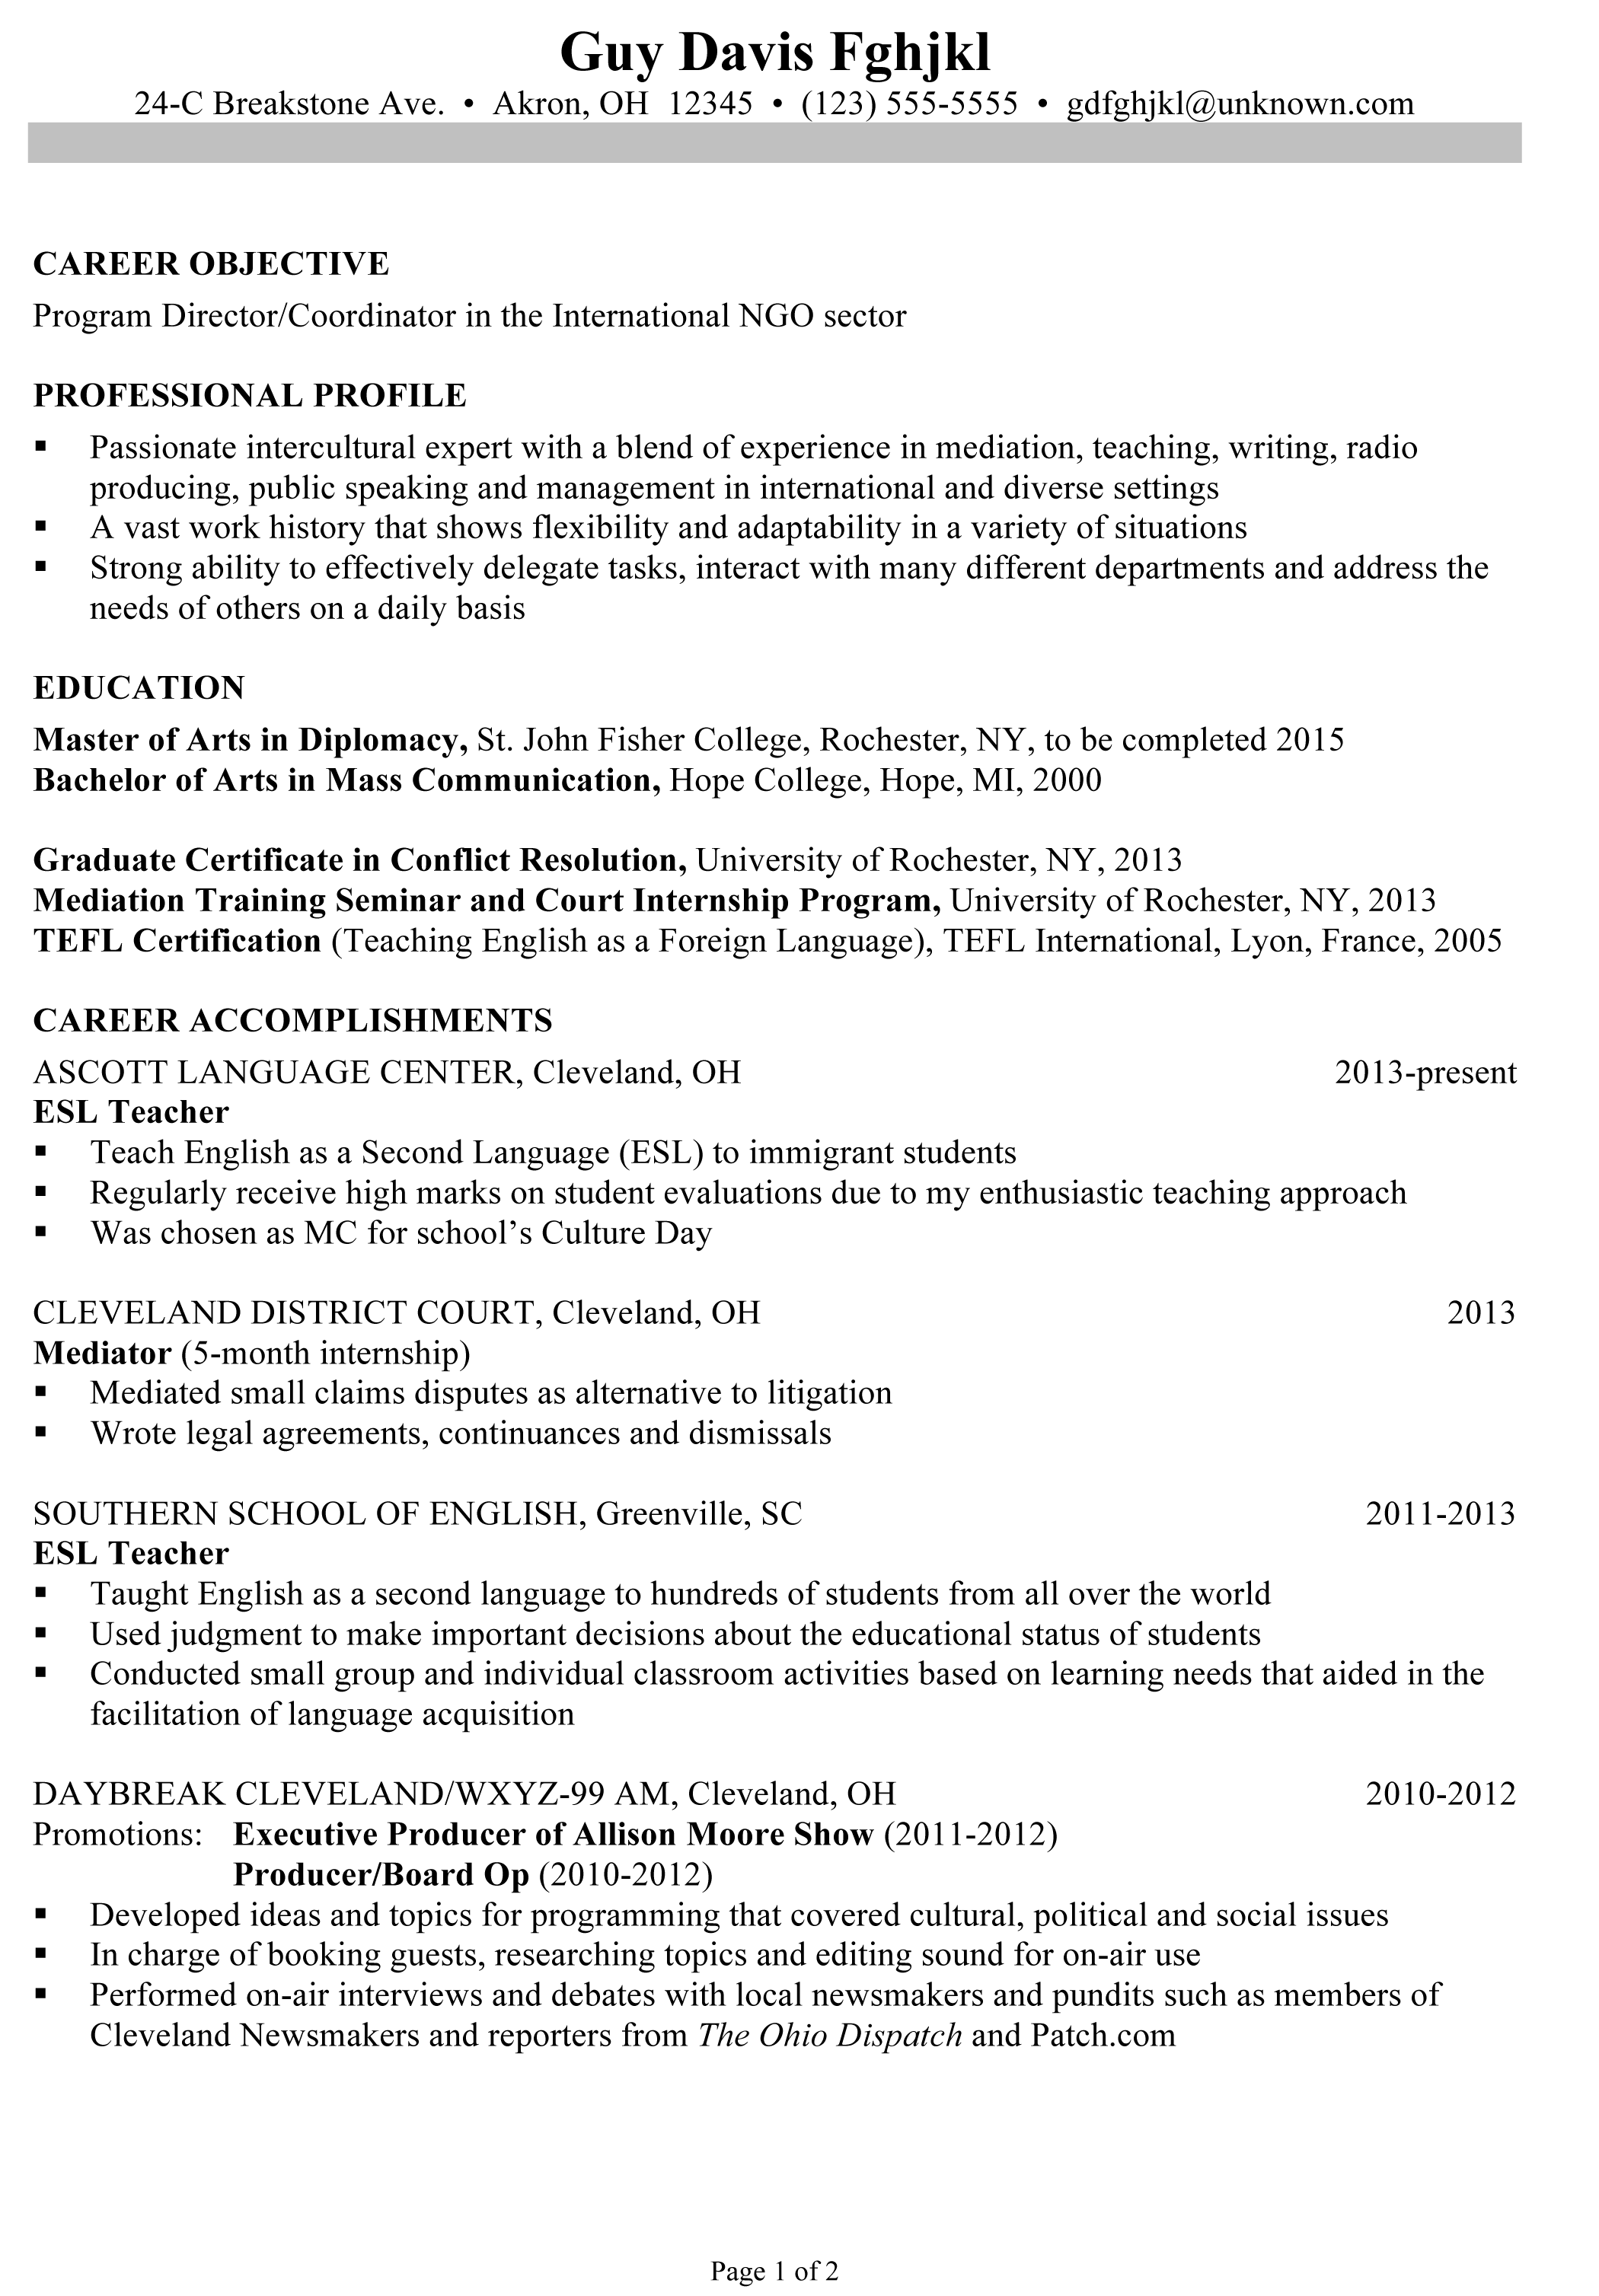 sample resumes with professional overview